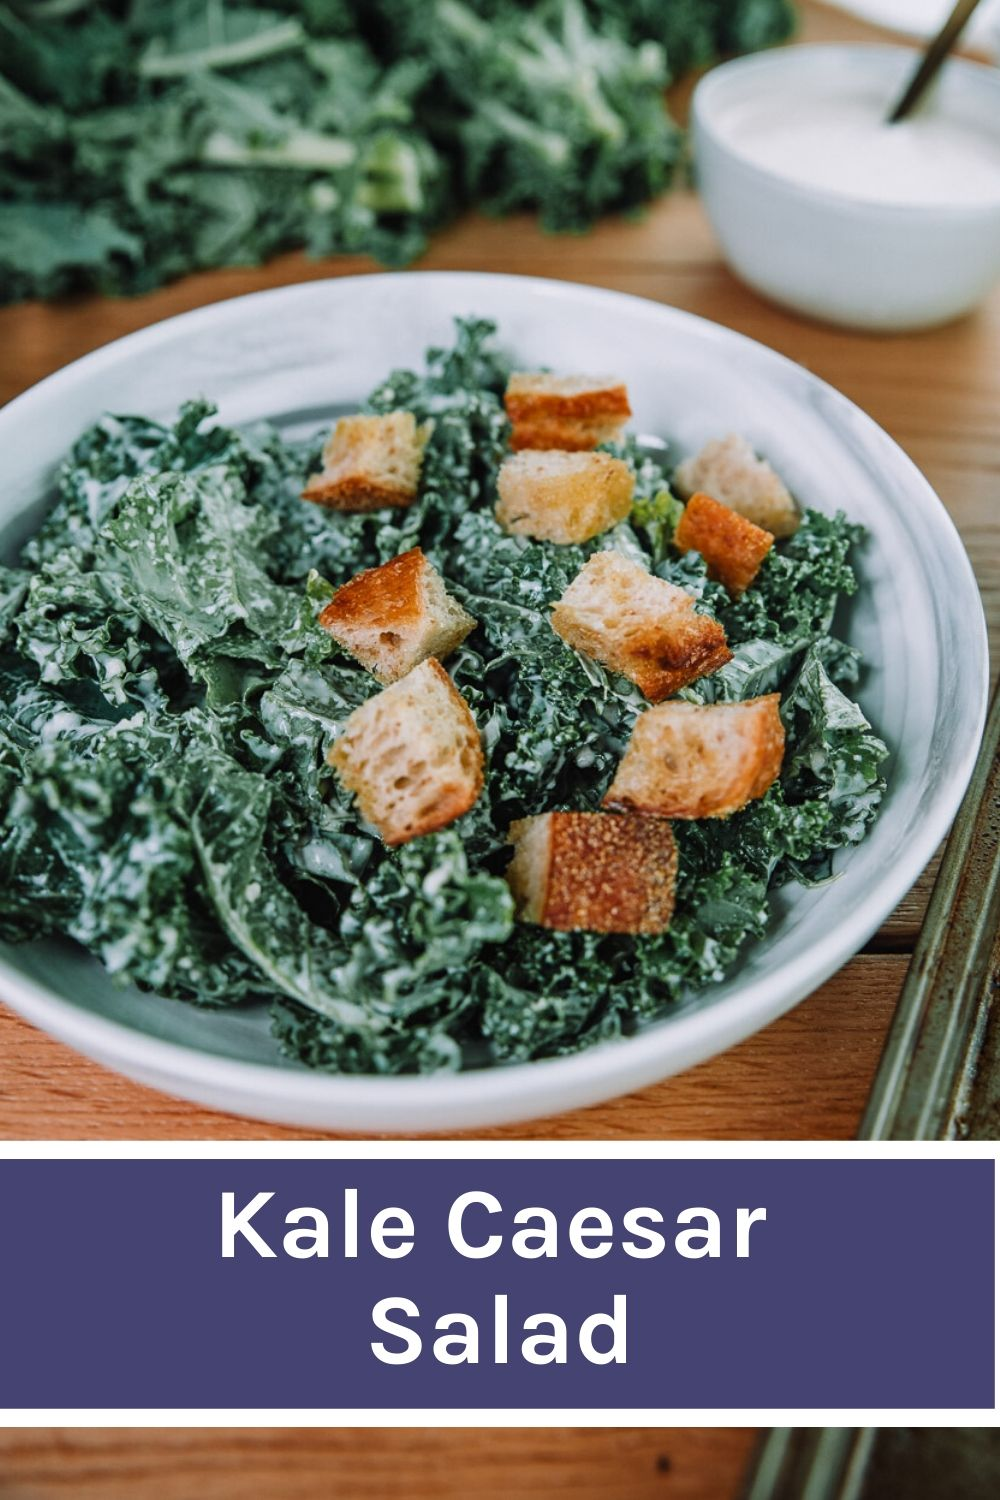 Kale Caesar Salad with fresh baked croutons in a white bowls on a wood table . Kale Caesar salad recipe by Farmer's Market Society.  Market Inspired Meals. #foodphotography #recipe #caesarsalad Easy salad ideas, Caesar salad dressing, green salad, fresh salad, lunch ideas, simple salads, croutons, quick salad ideas, make ahead meals.